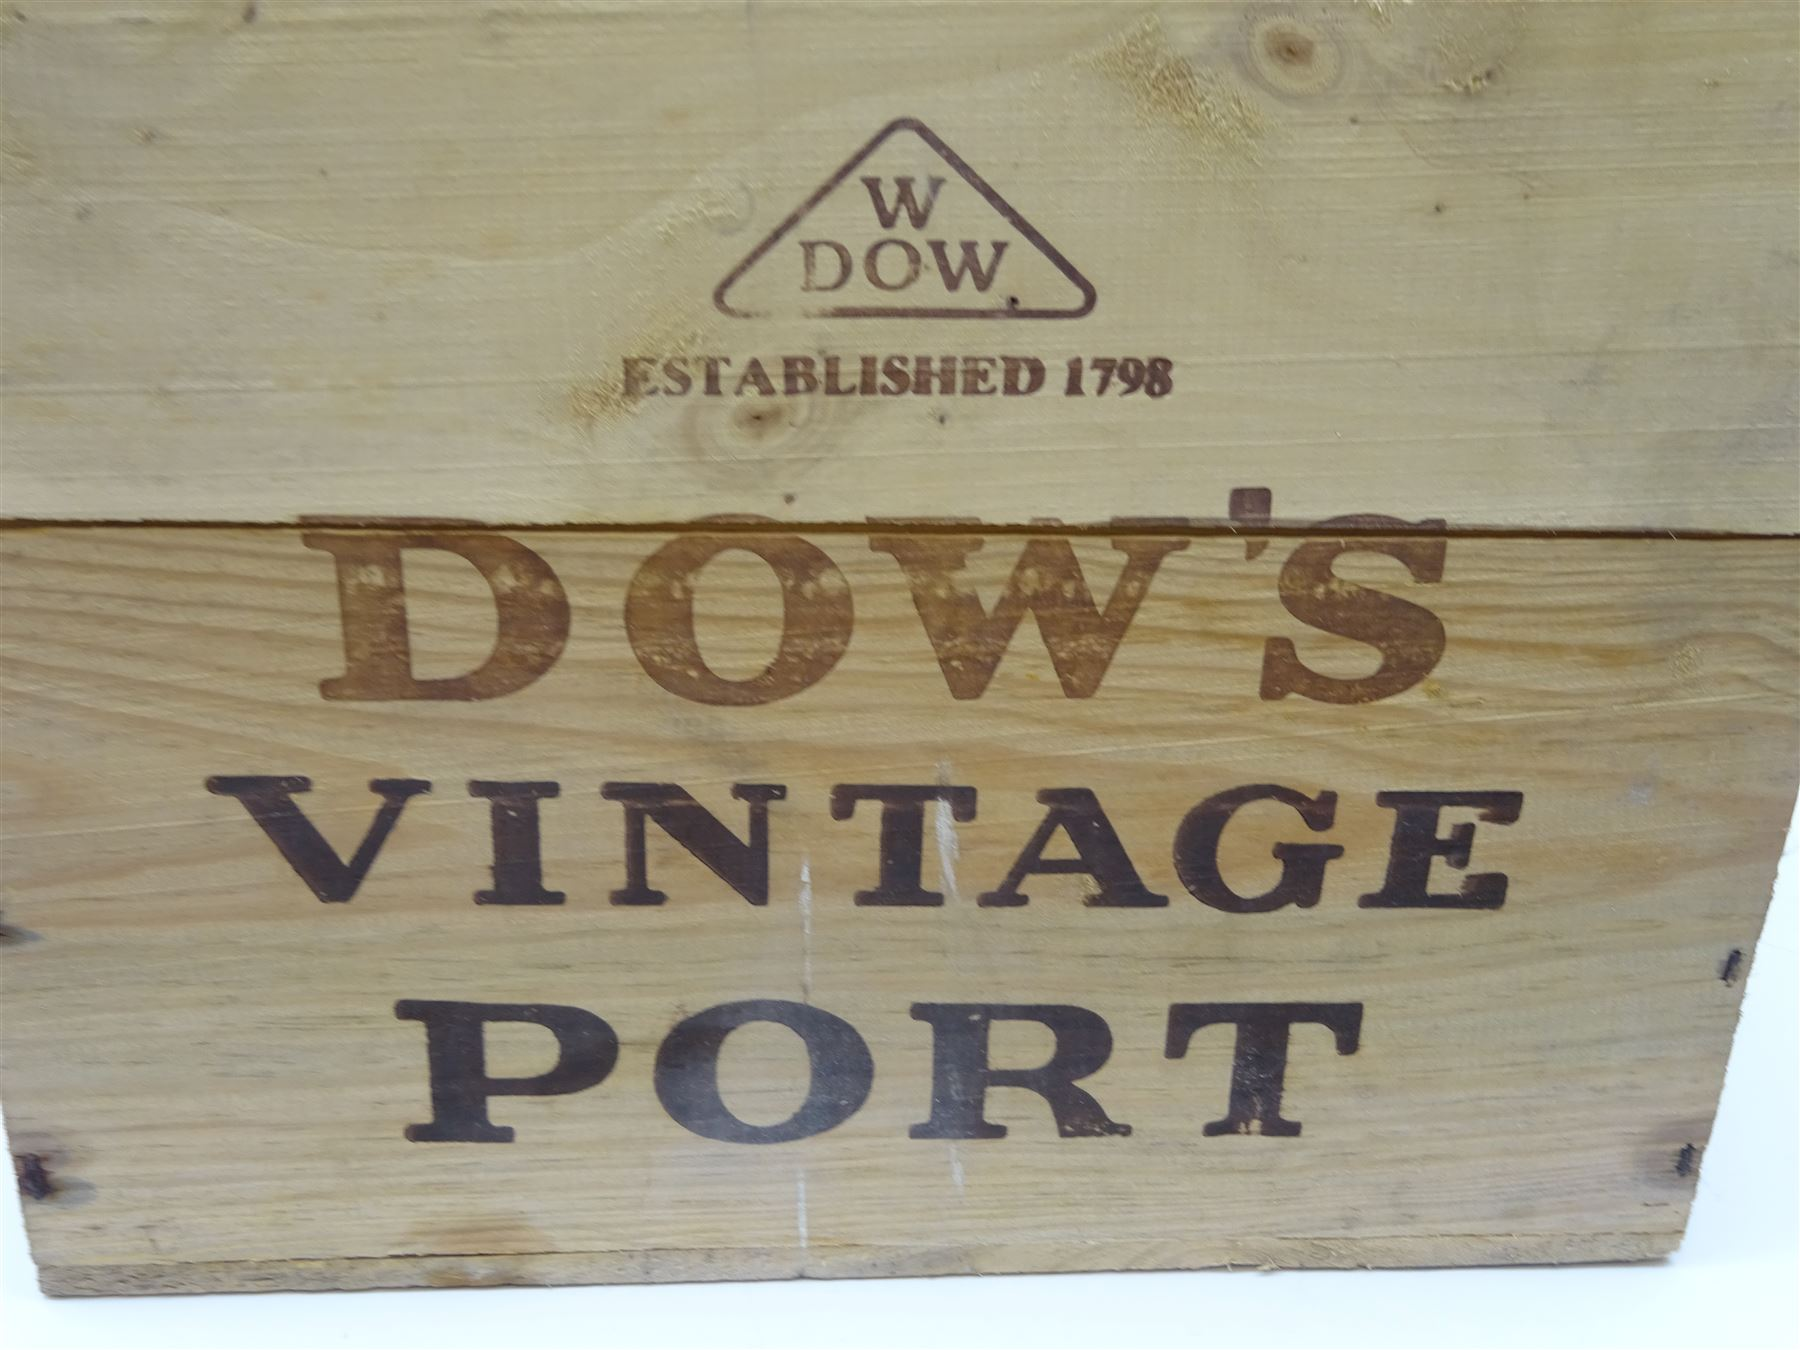 Dow's 1983 vintage port - Image 2 of 5